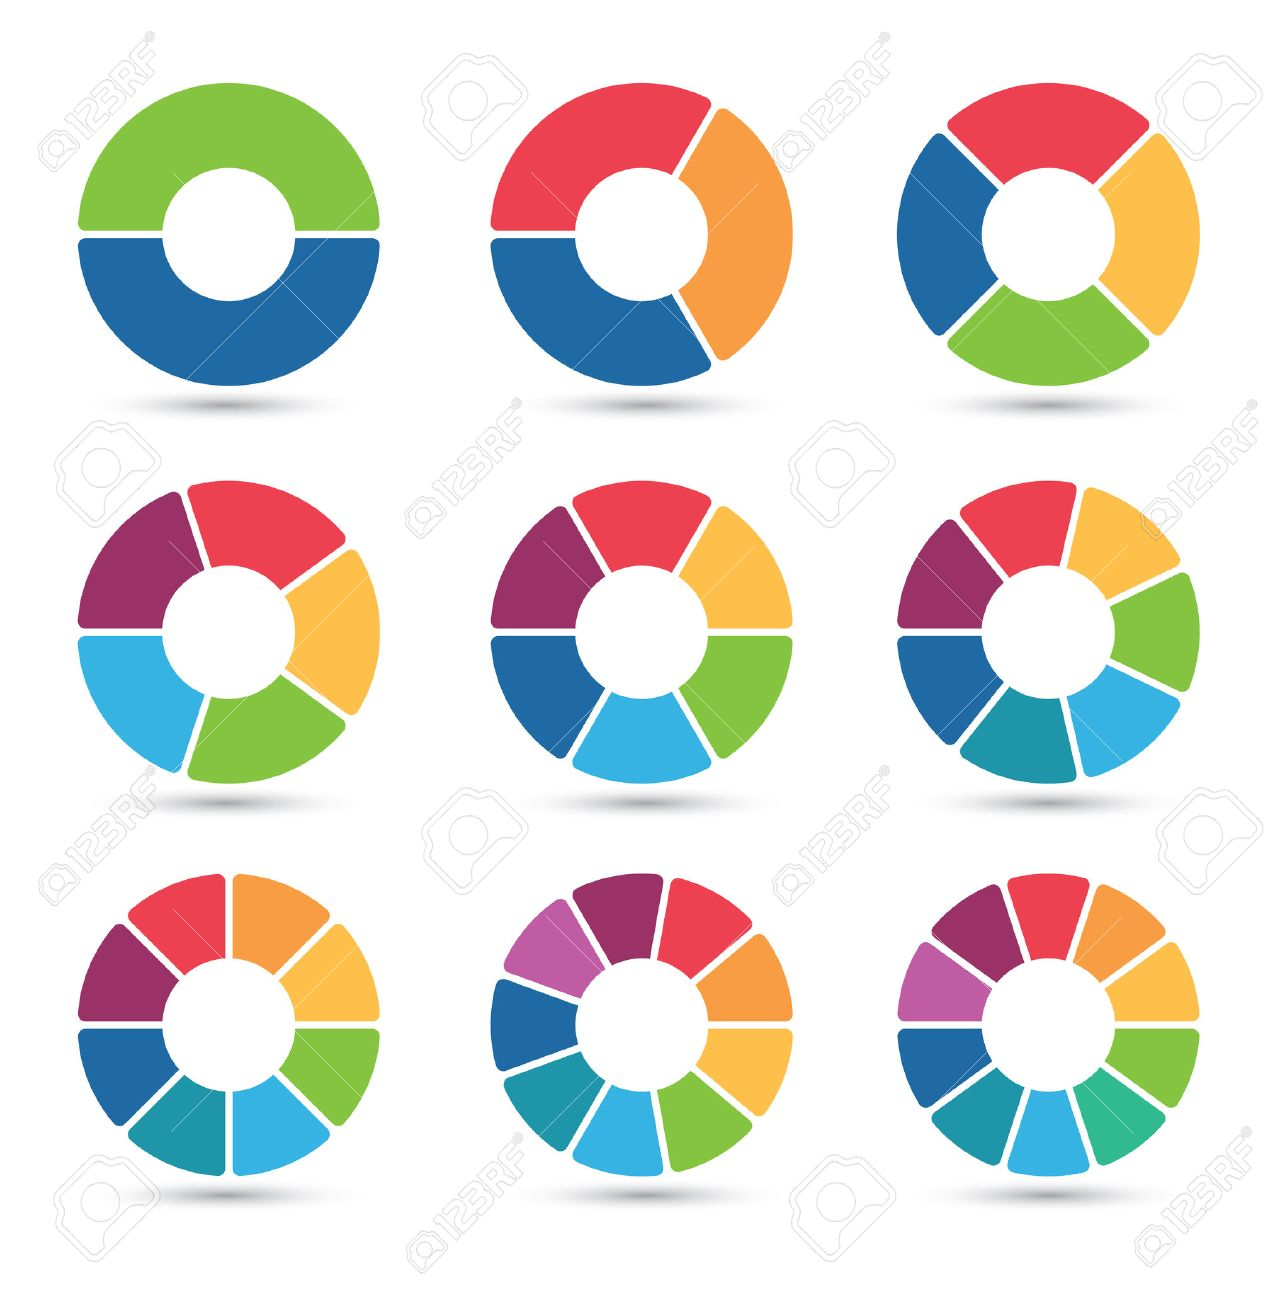 Pie chart stock photos royalty free business images collection of circular diagrams with 2 3 4 5 6 7 nvjuhfo Images